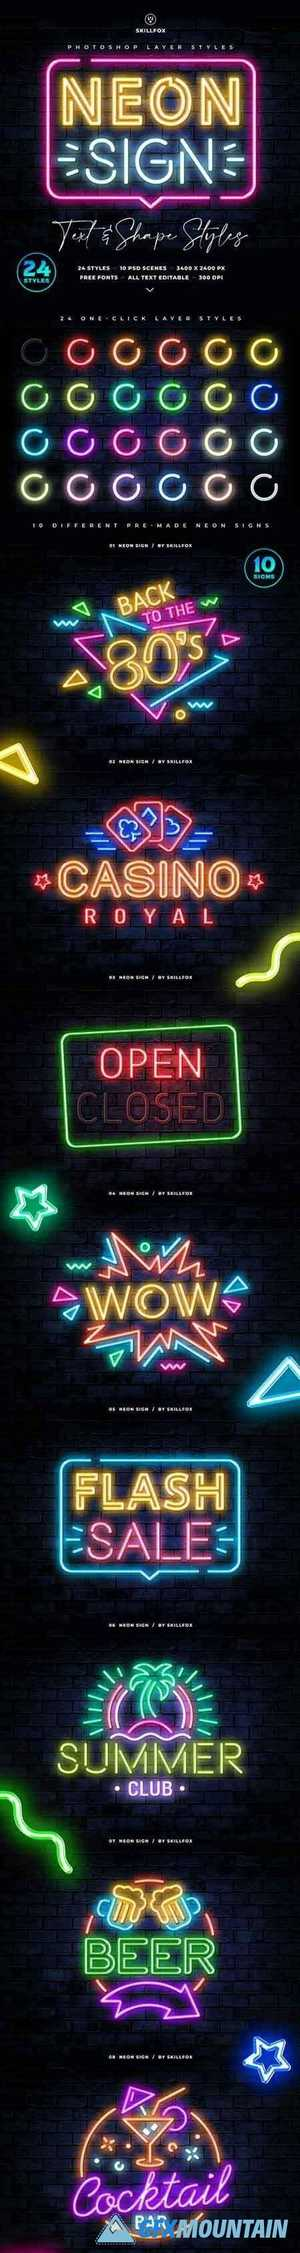 Neon Sign Photoshop Styles 25832553